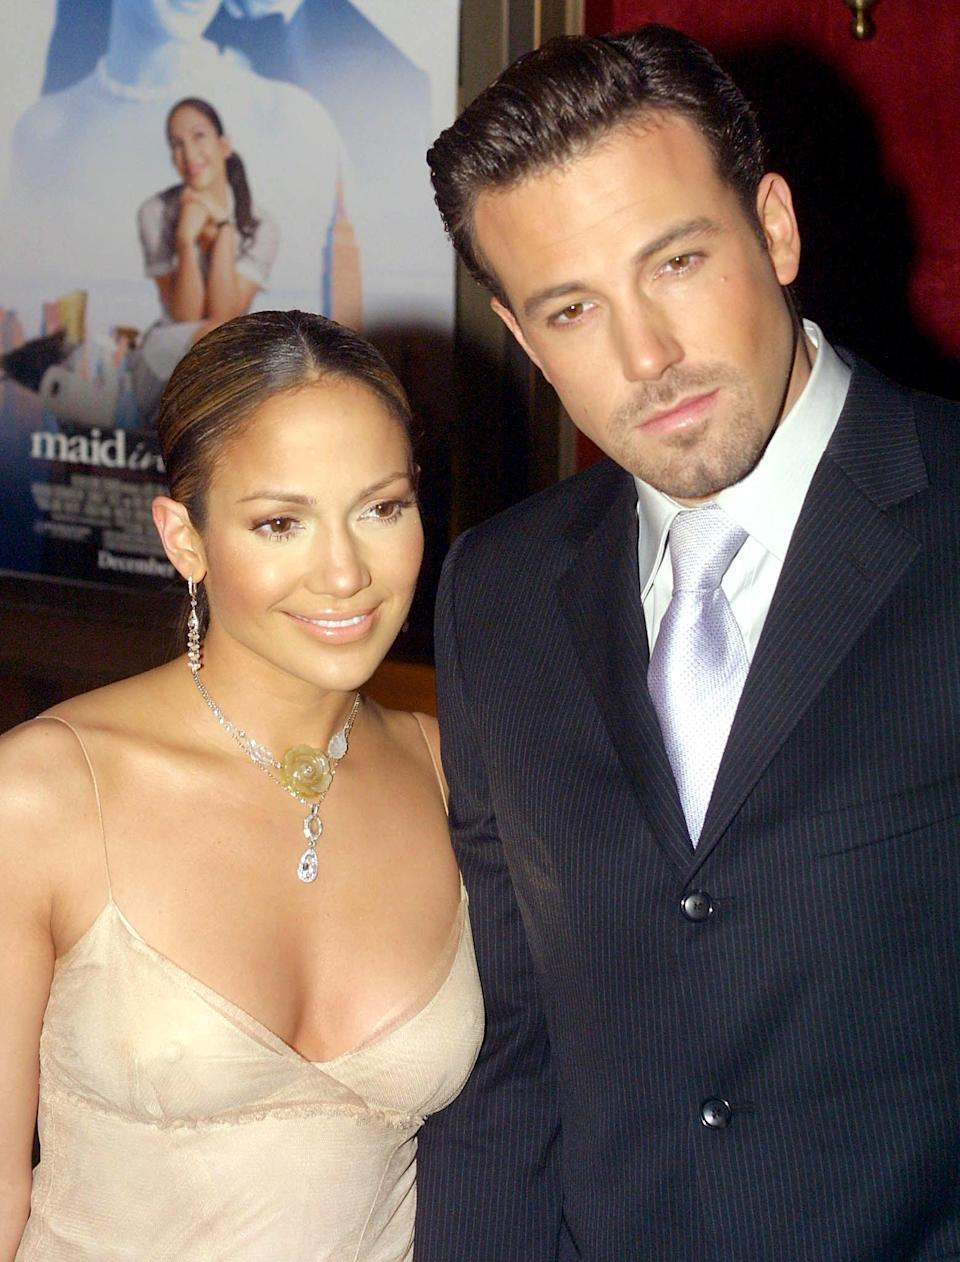 Lopez and Affleck called off their engagement in 2004 (Getty Images).